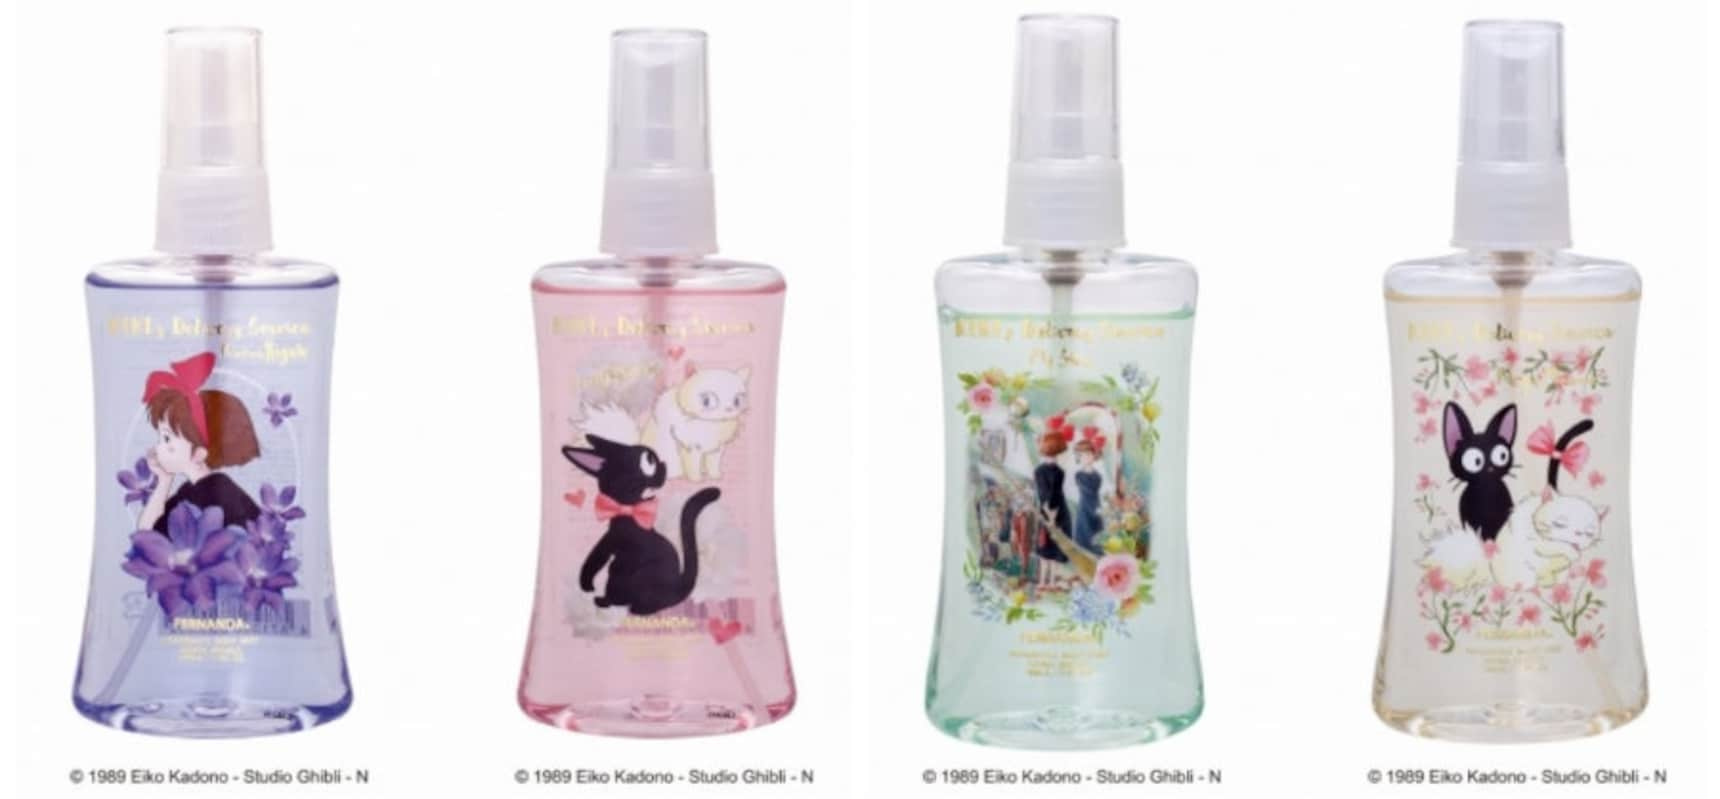 Smell Sweet Thanks to Kiki & Her Cat Jiji